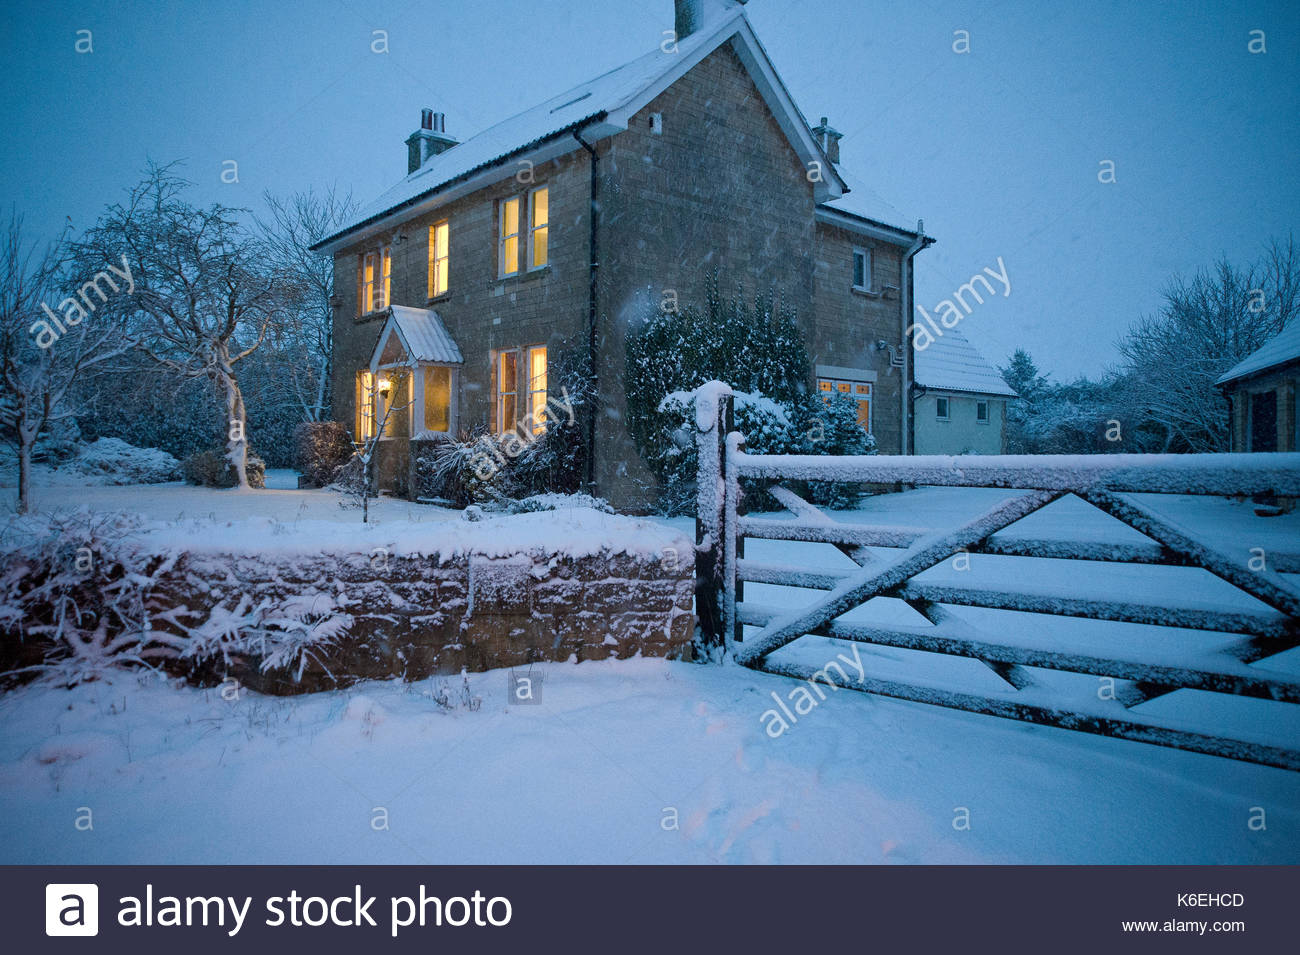 home garden christmas stockfotos home garden christmas bilder alamy. Black Bedroom Furniture Sets. Home Design Ideas